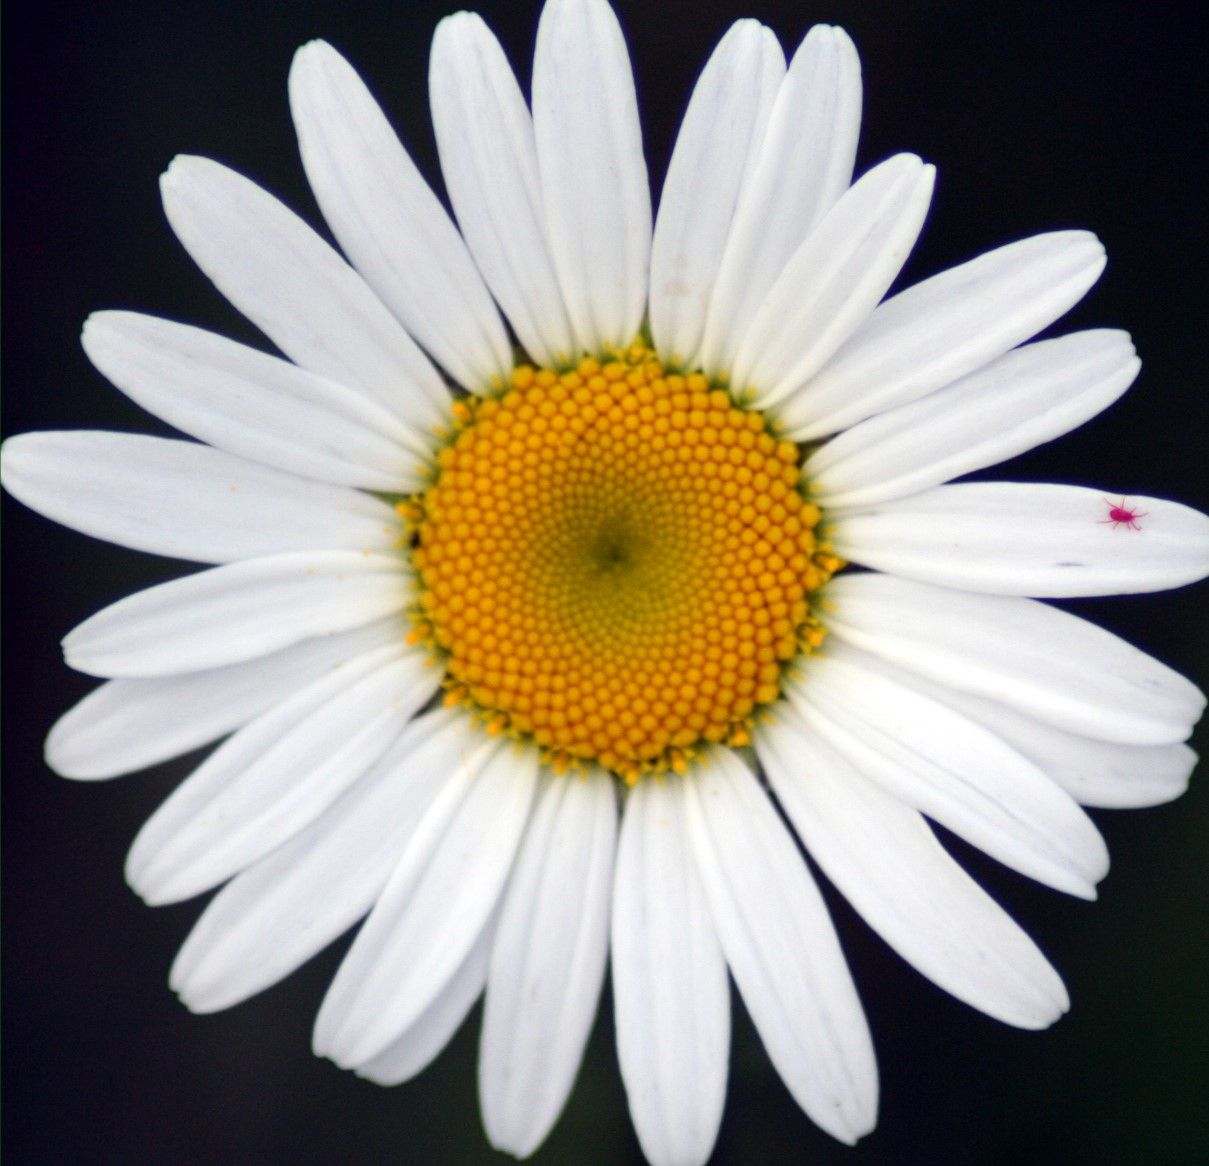 Daisy images in the usa guest blog 3 dancing with daisy daisy images in the usa guest blog 3 dancing april birth flowersdaisy izmirmasajfo